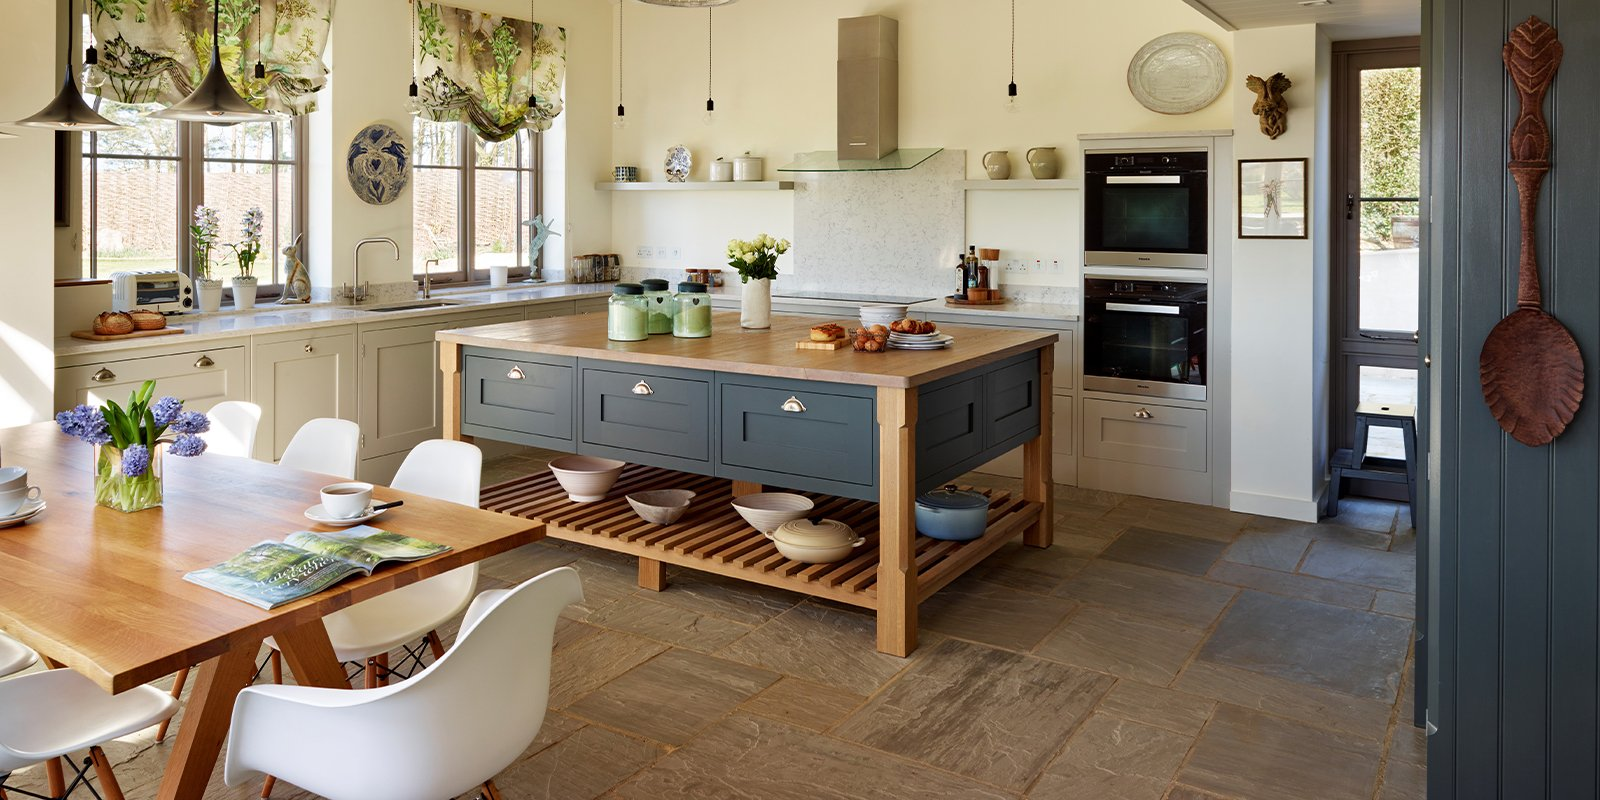 davonport kitchen with large island and dining area